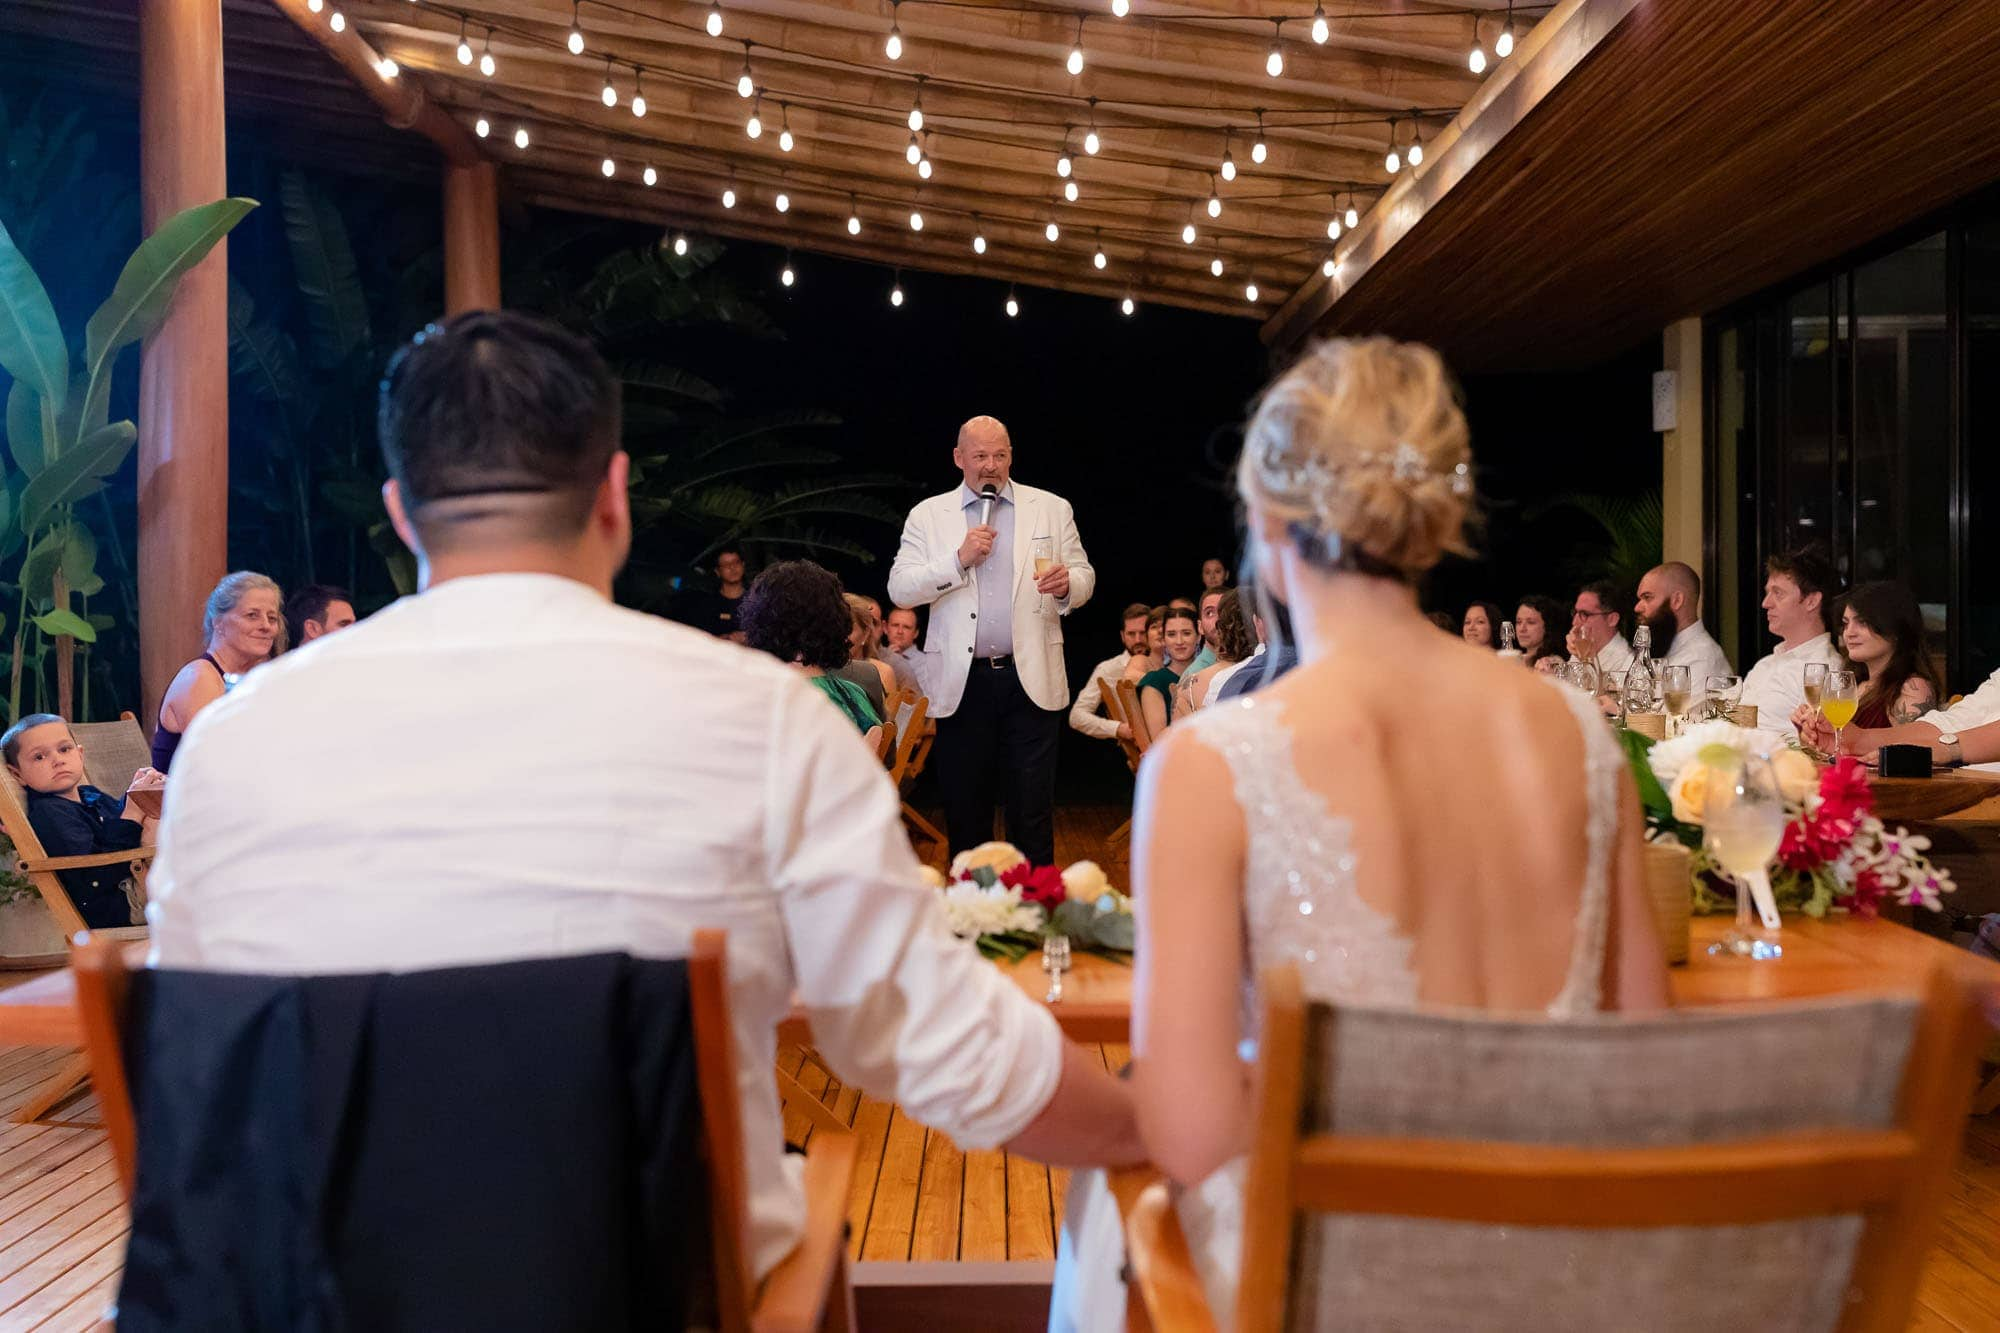 Speaking at the reception of a glamping wedding